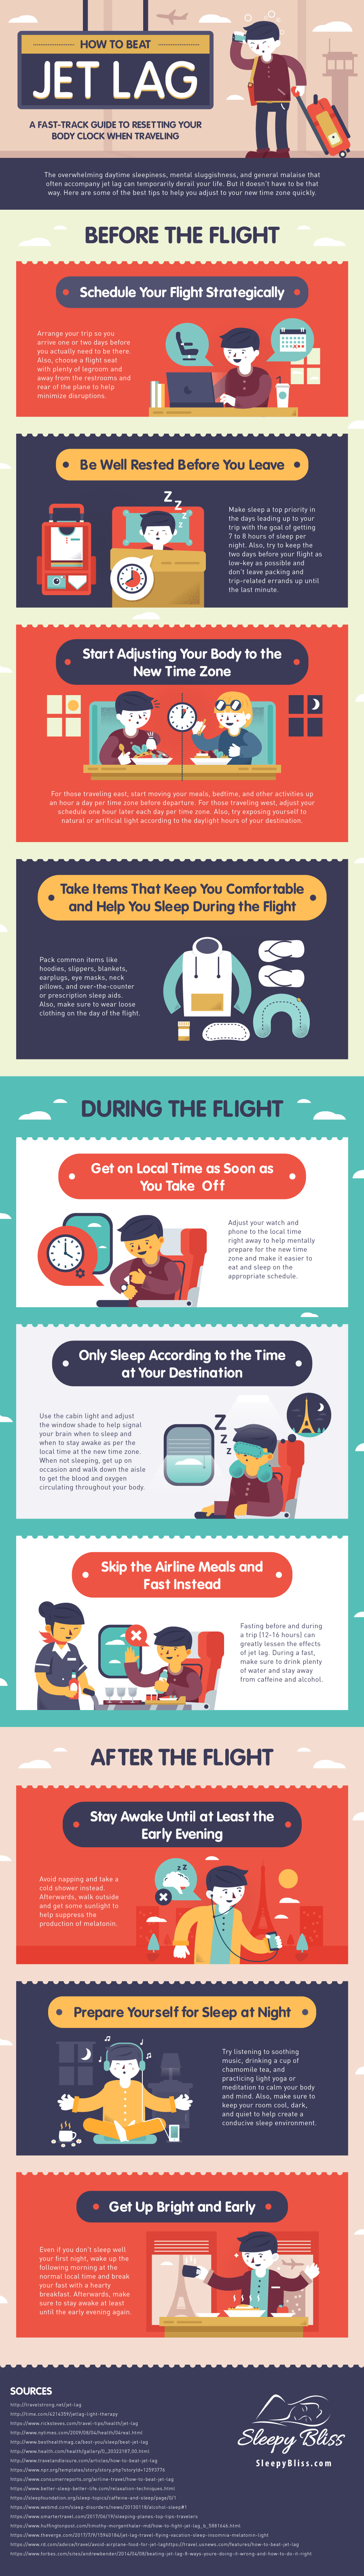 When Your Body Clock Gets Confused – The Impact of Jet Lag and How to Beat It - Infographic